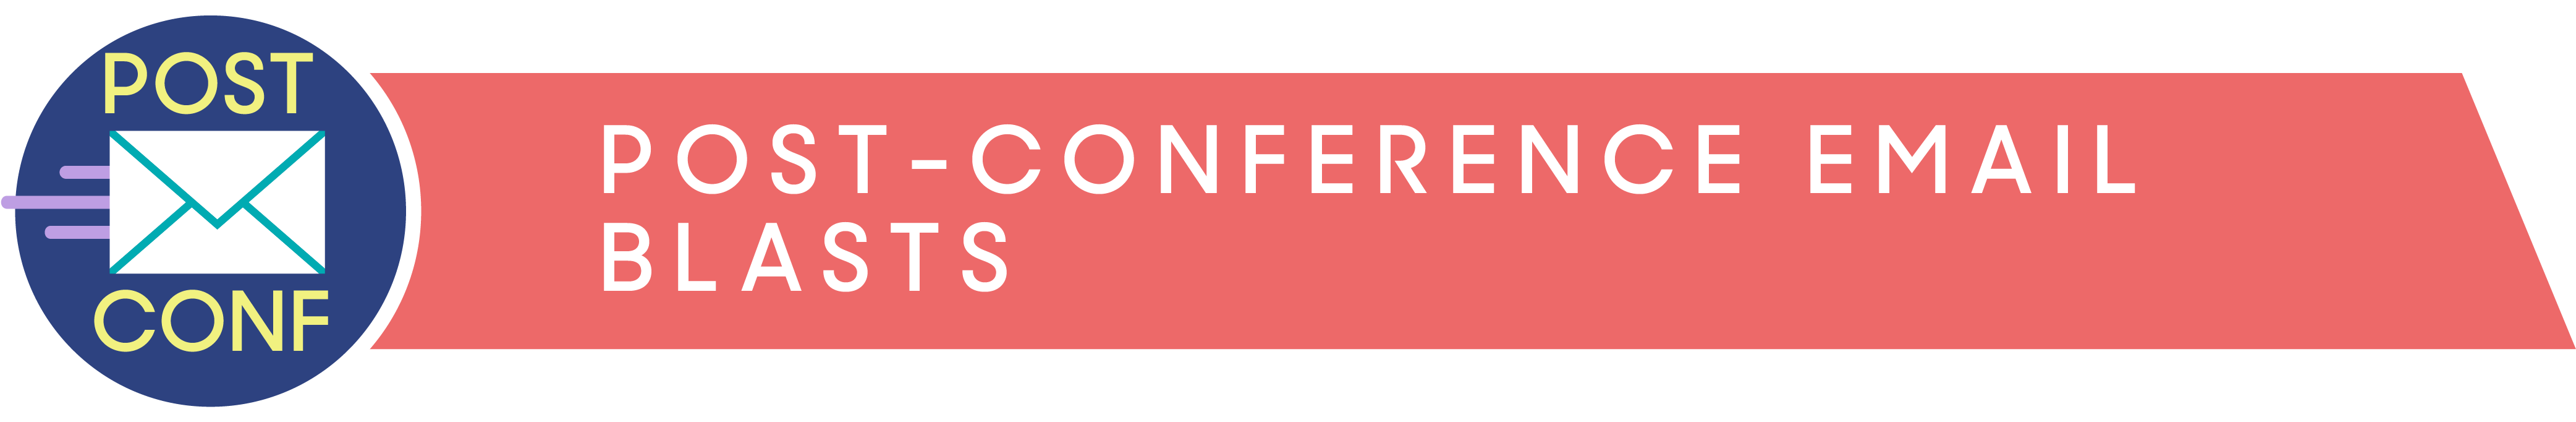 Post-Conference Email Blasts